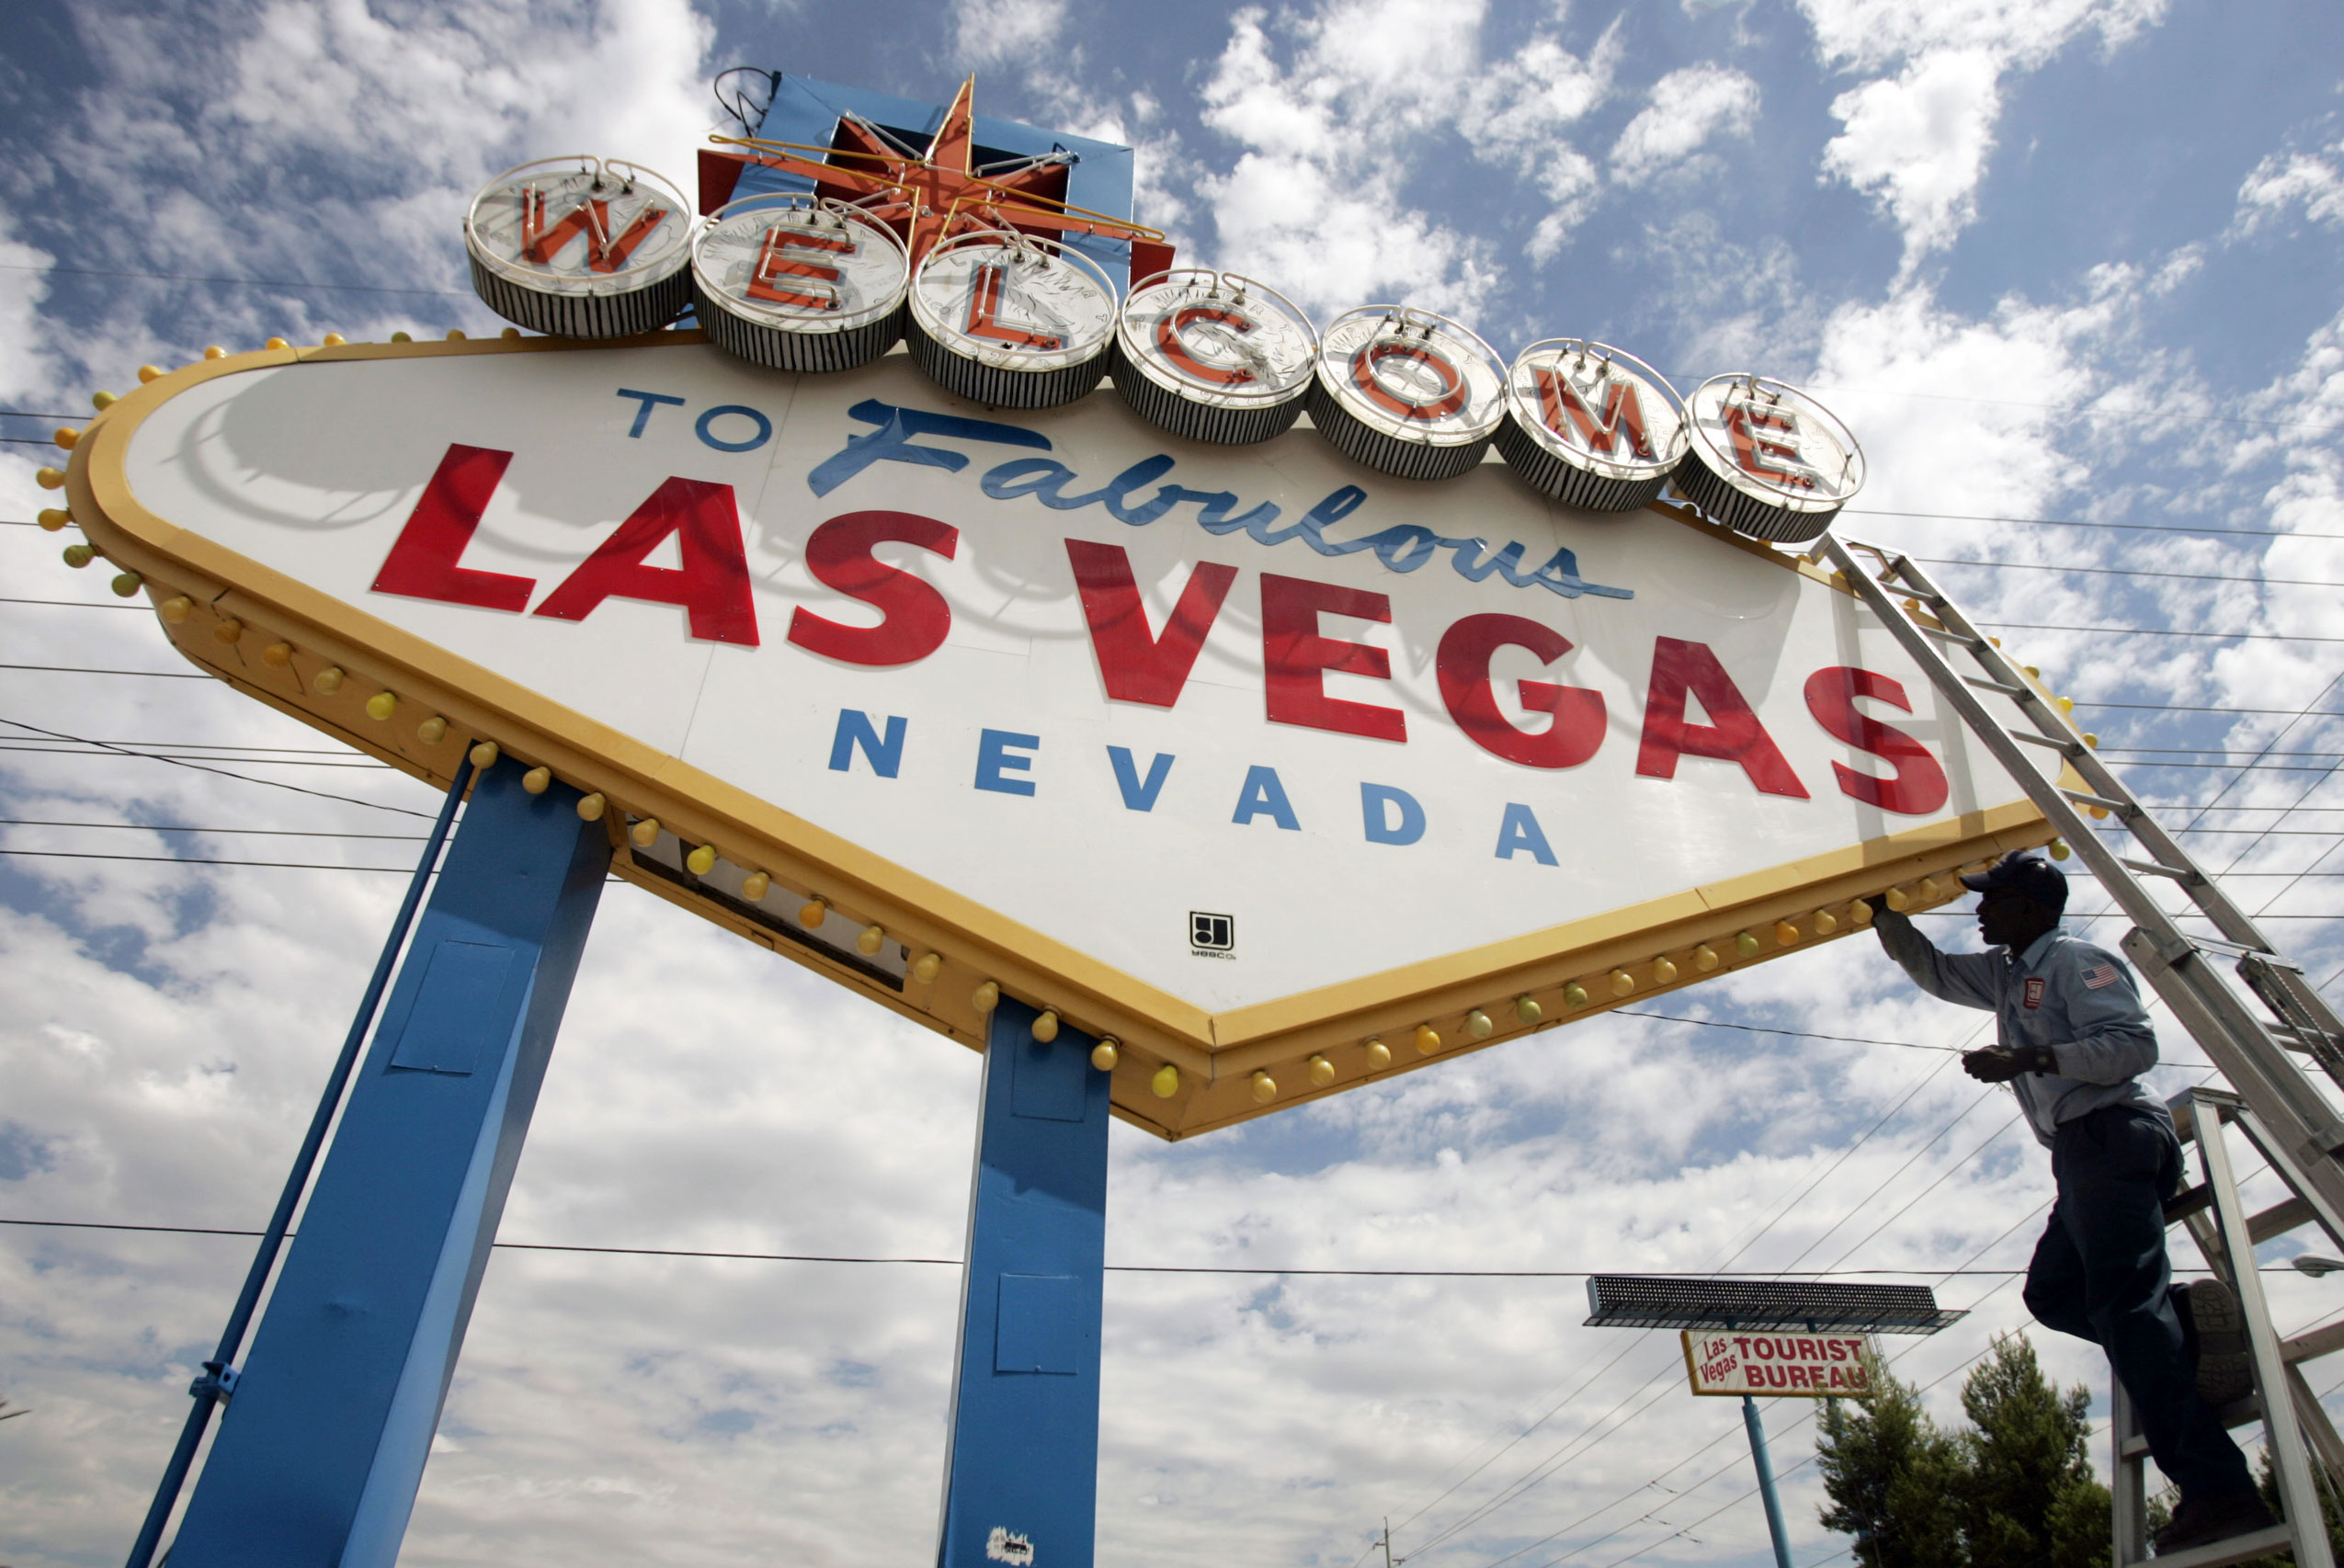 55 and over living in las vegas - Las Vegas Ready To Gamble On Professional Sports And Nhl Arena Thomas Jefferson Street Us News